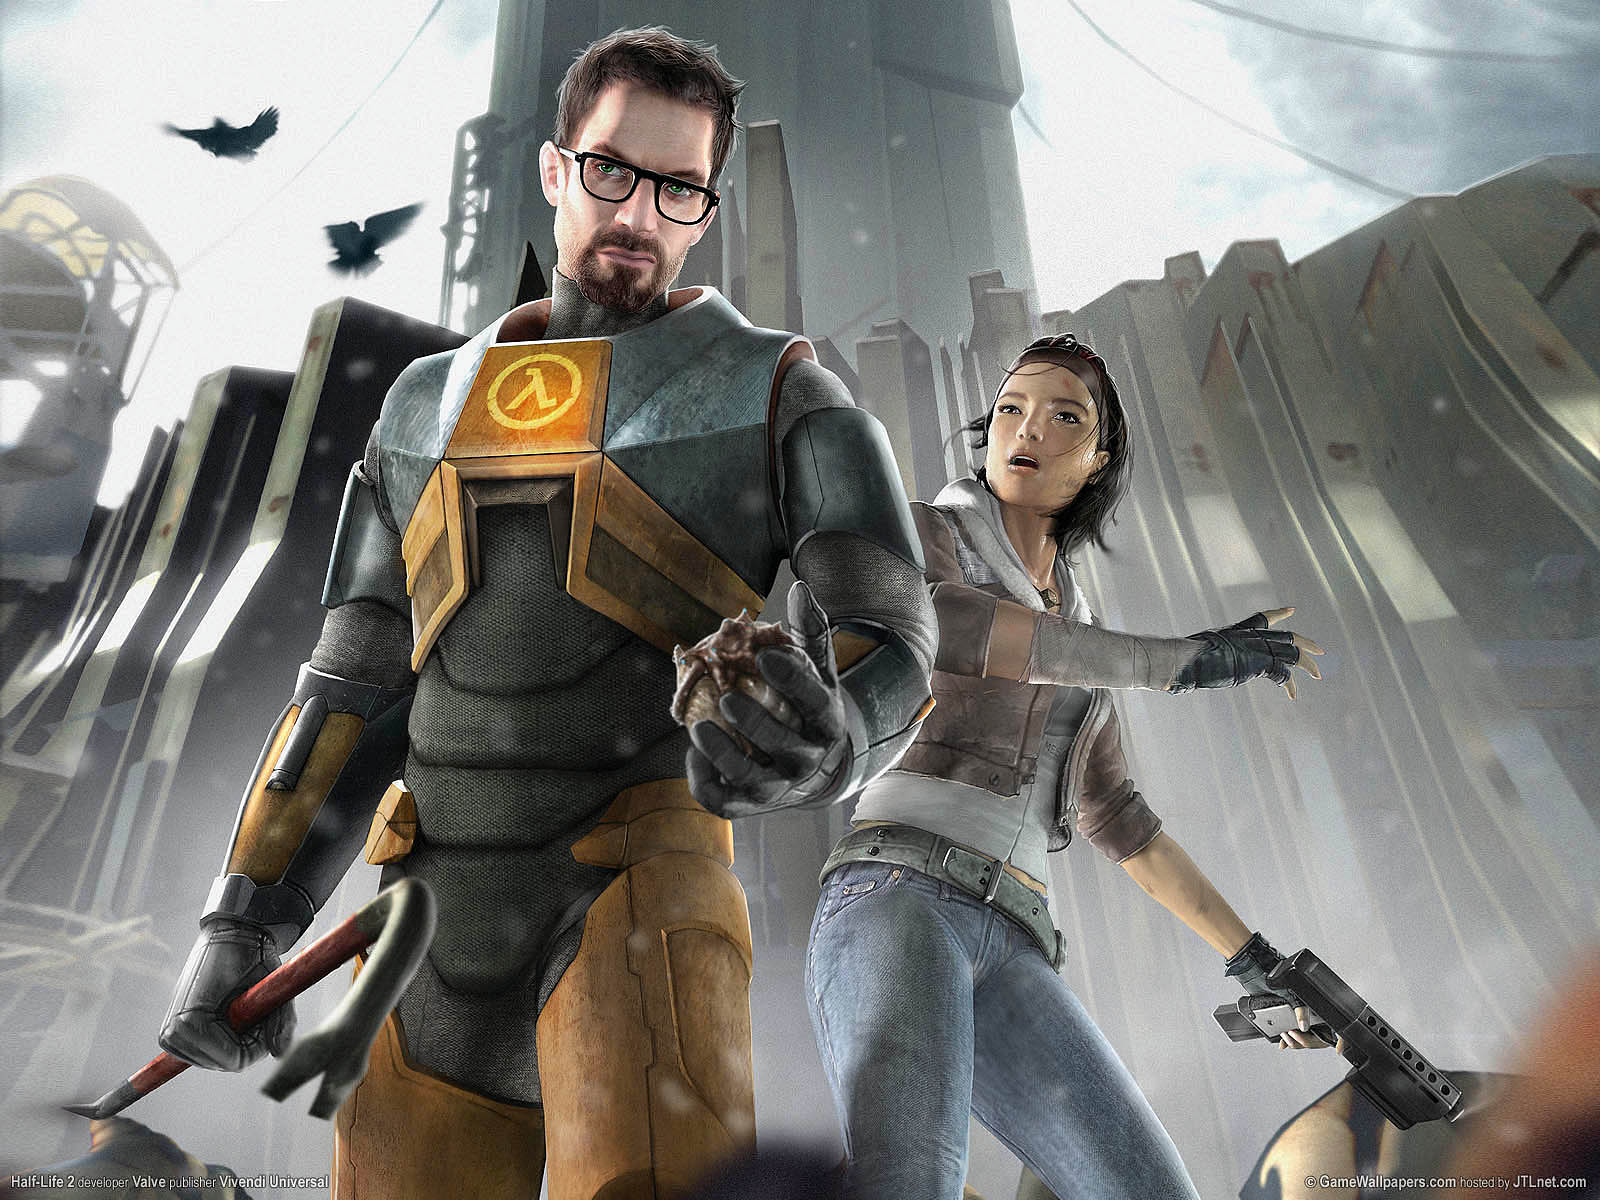 Half Life 2: Episode 3 Concept Art Leaked?